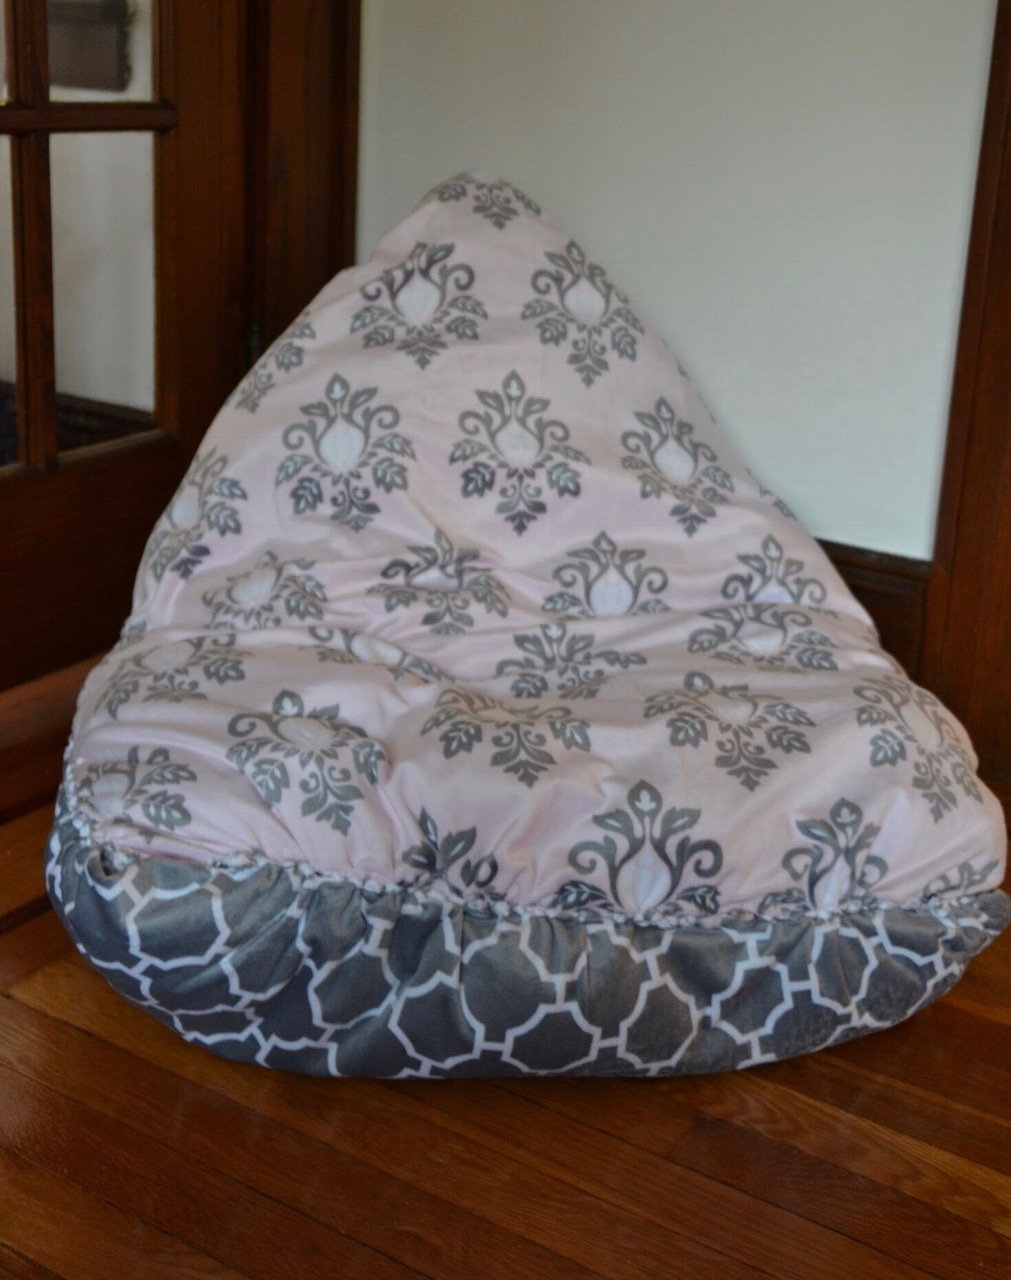 Diy No Sew Bean Bag Chair For Kids